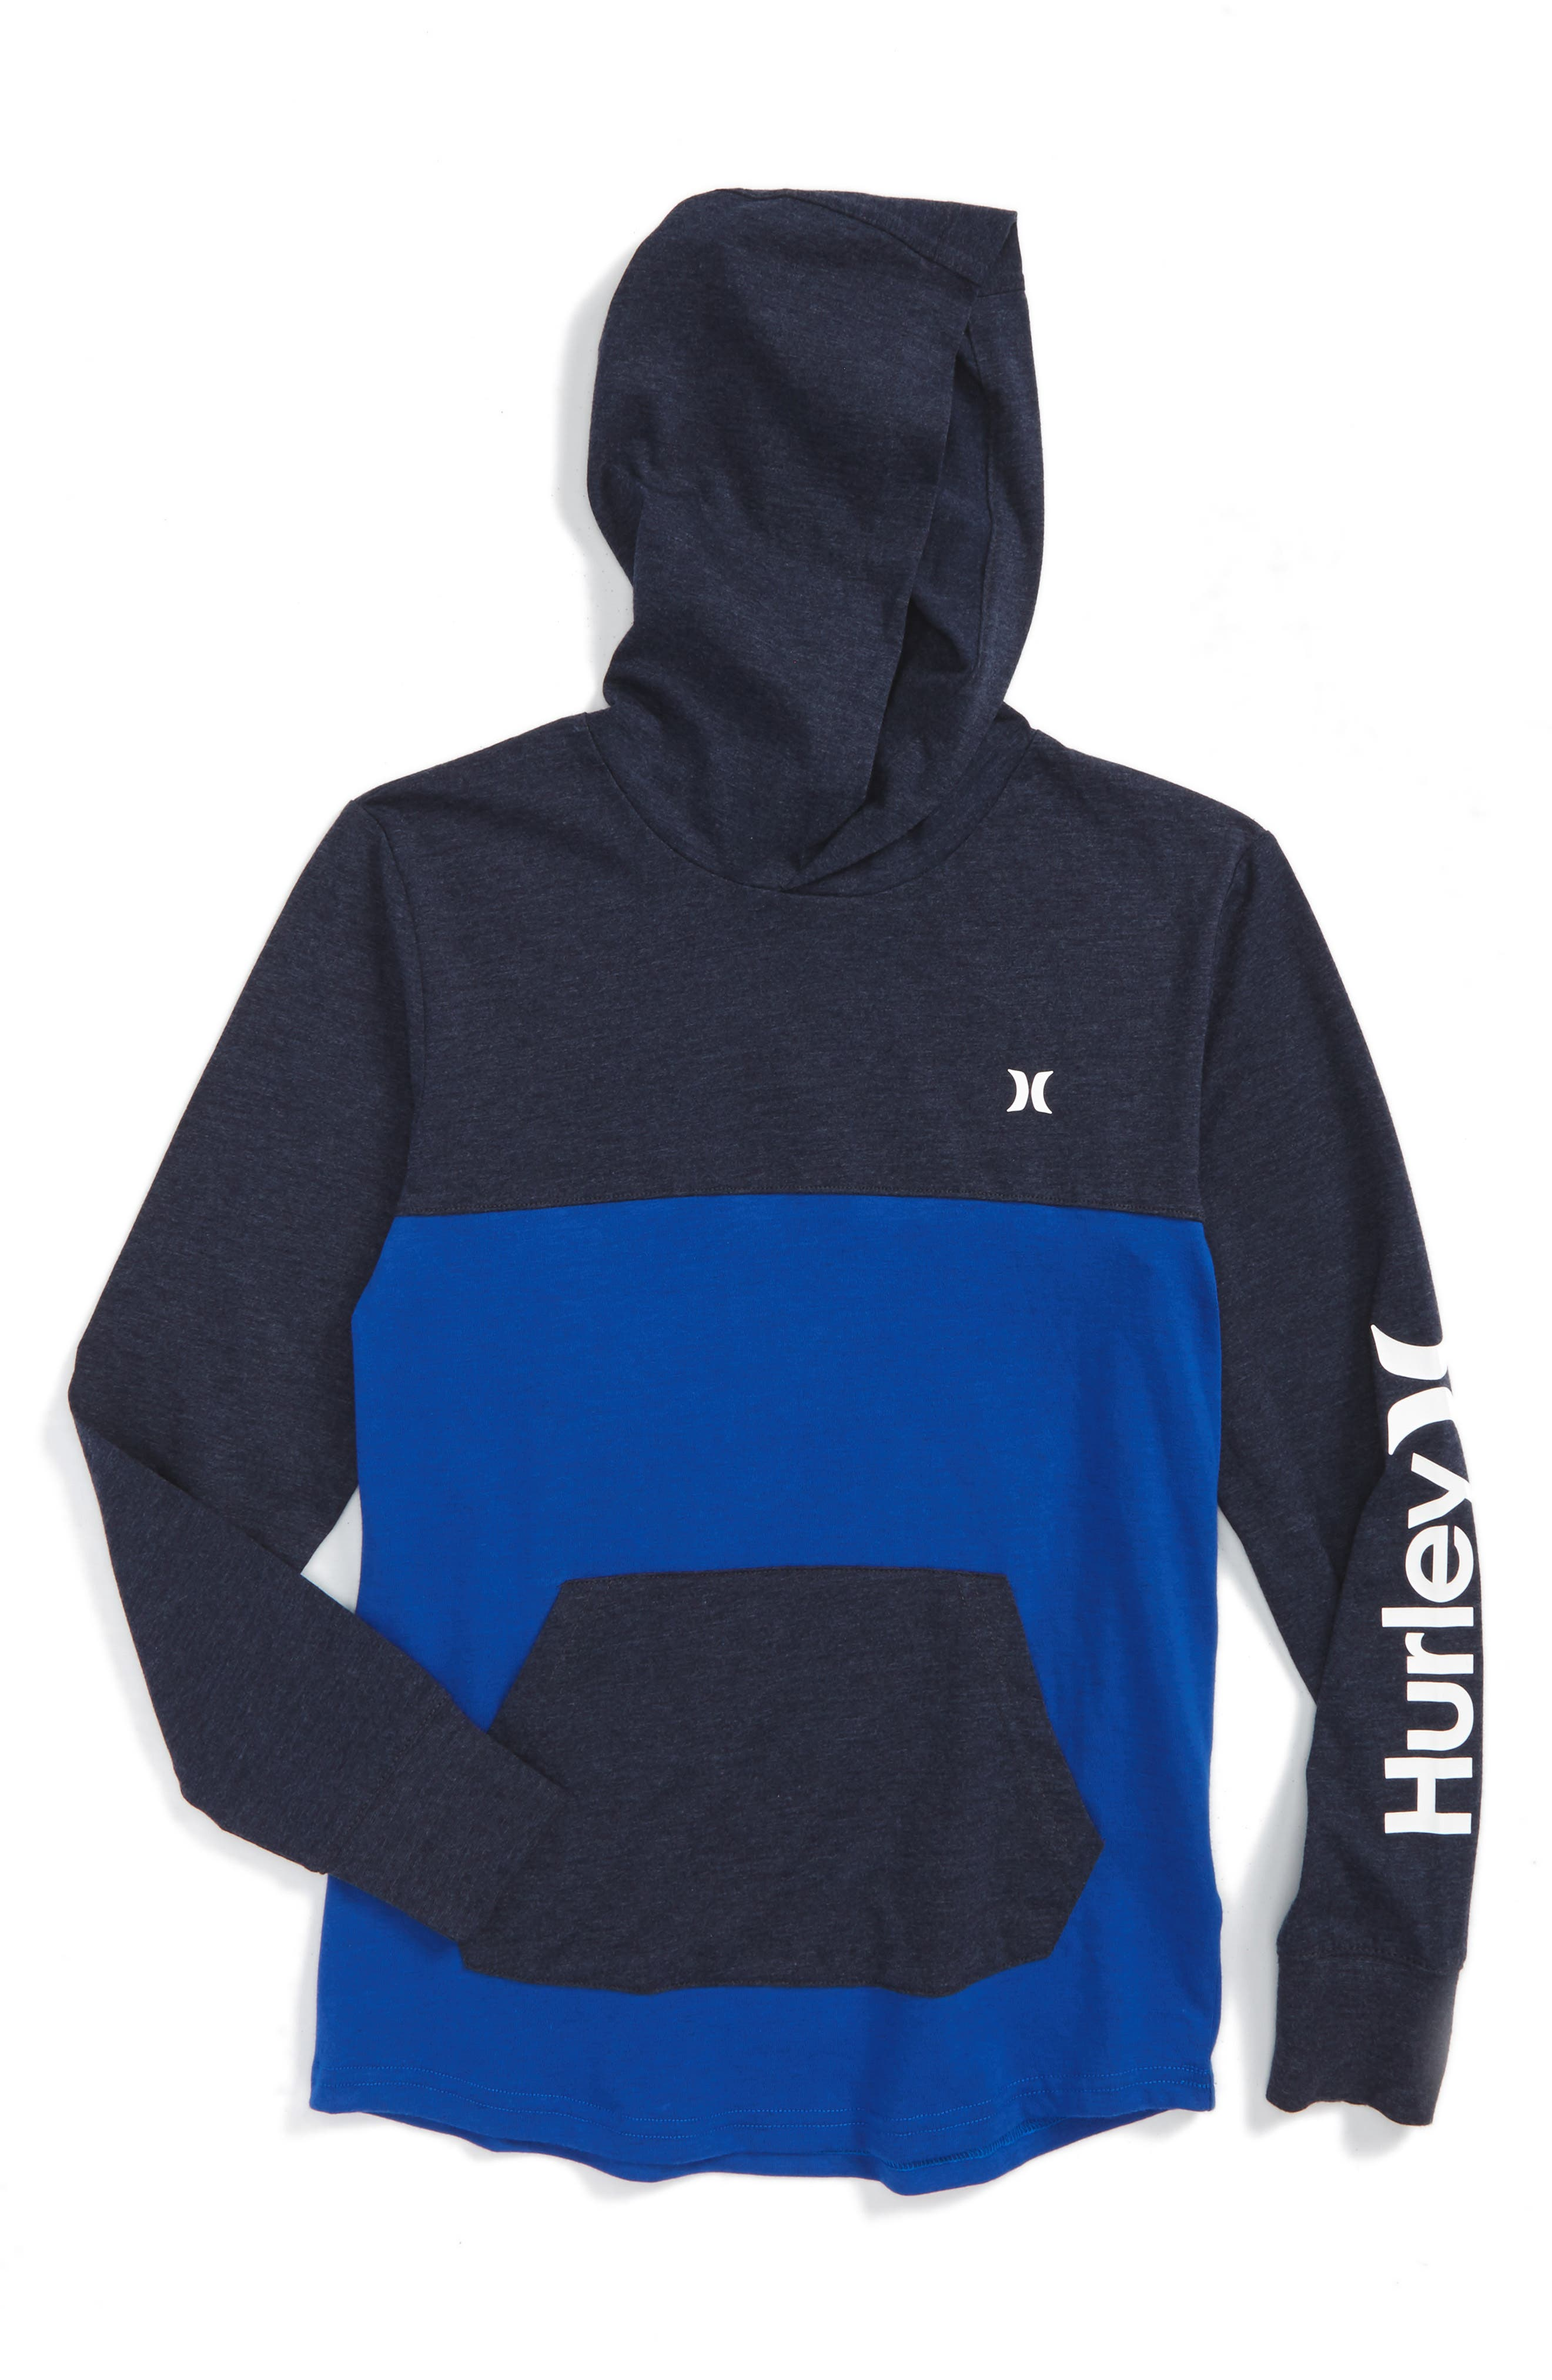 Hurley Lagos Dri-FIT Colorblocked Pullover Hoodie (Big Boys)